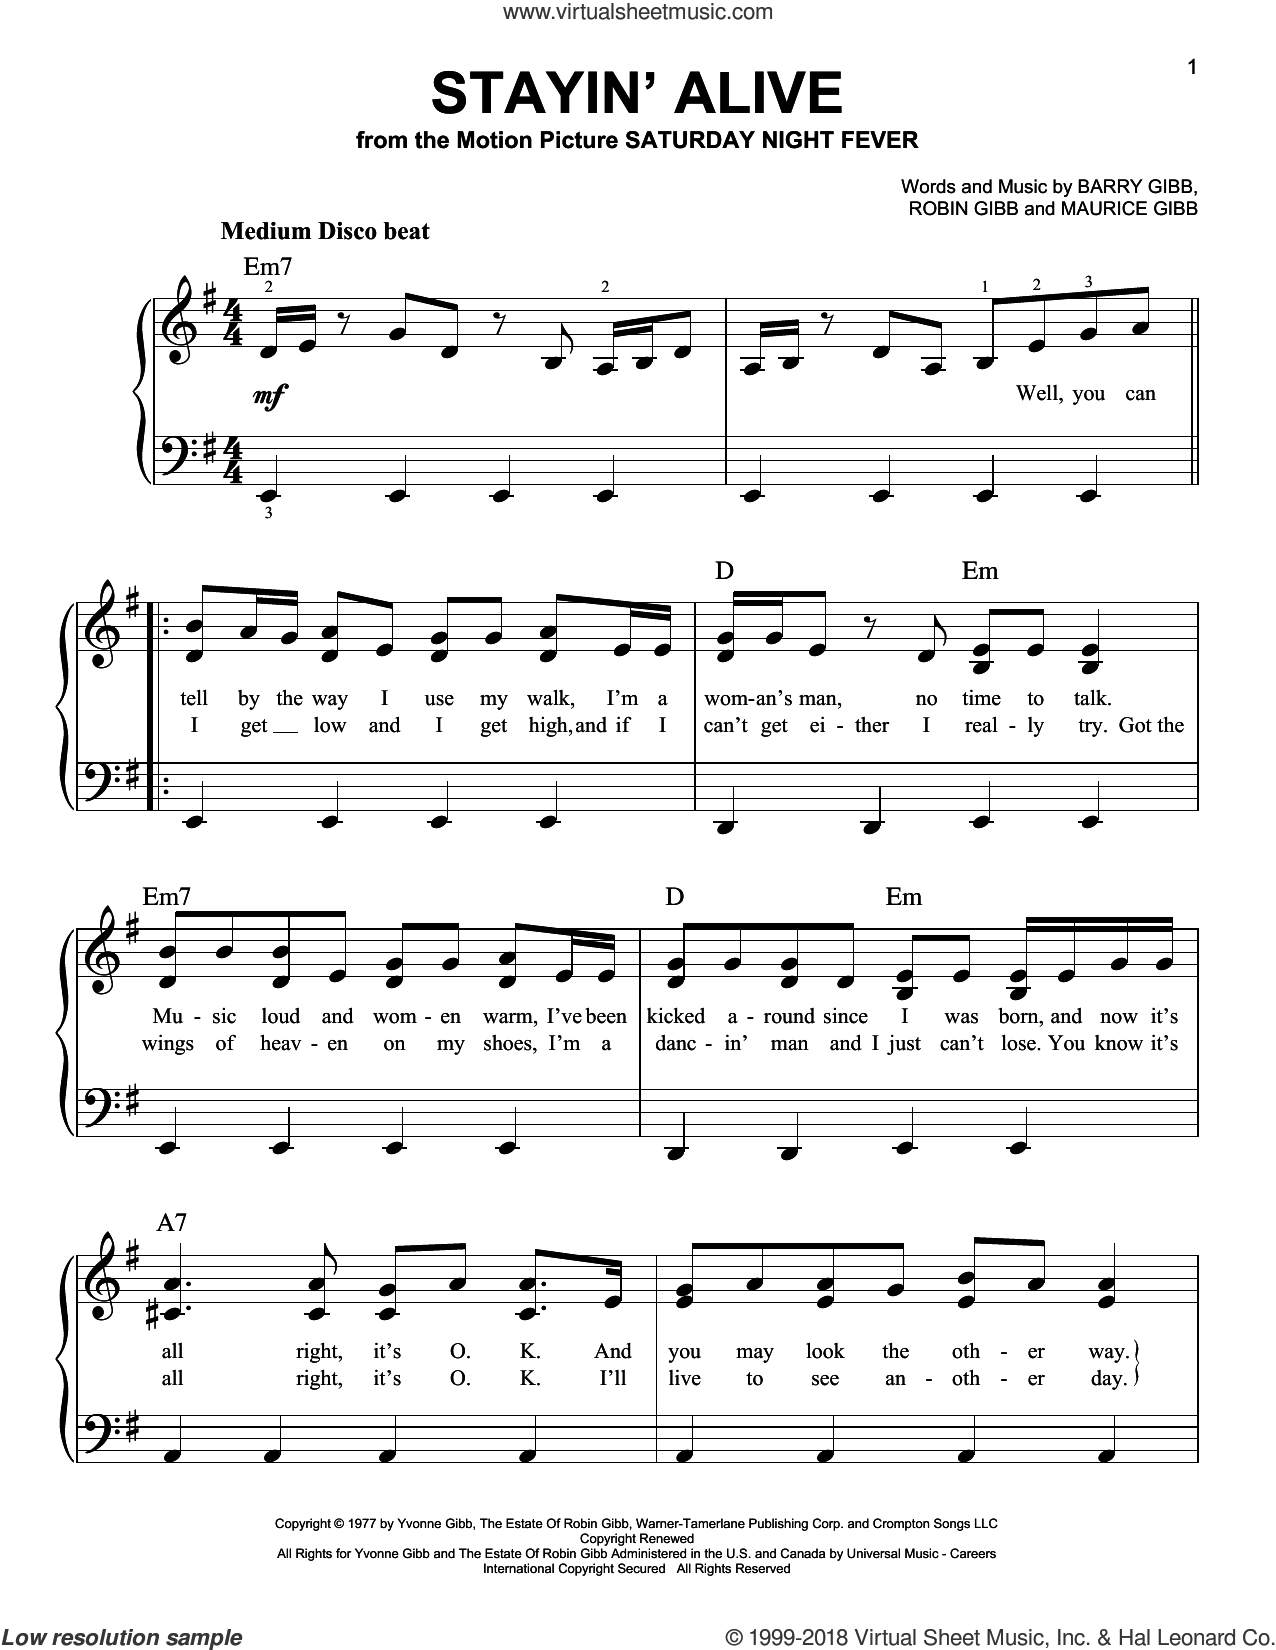 Stayin' Alive sheet music for piano solo by Bee Gees, N-Trance, Barry Gibb, Maurice Gibb and Robin Gibb, beginner skill level